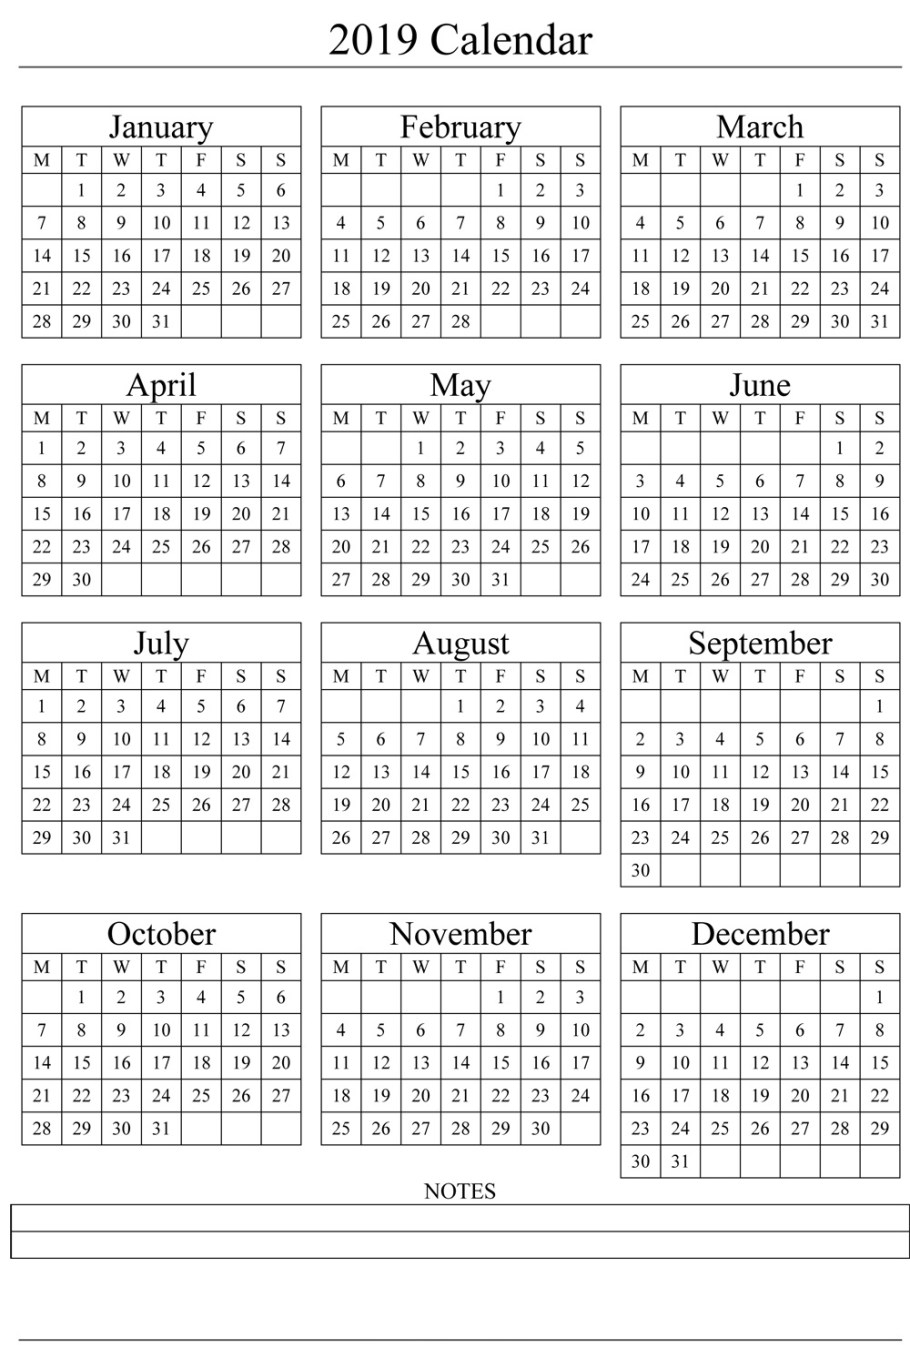 2019 Leave Year Calendar With Yearly Printable Templates Holidays PDF Word Excel